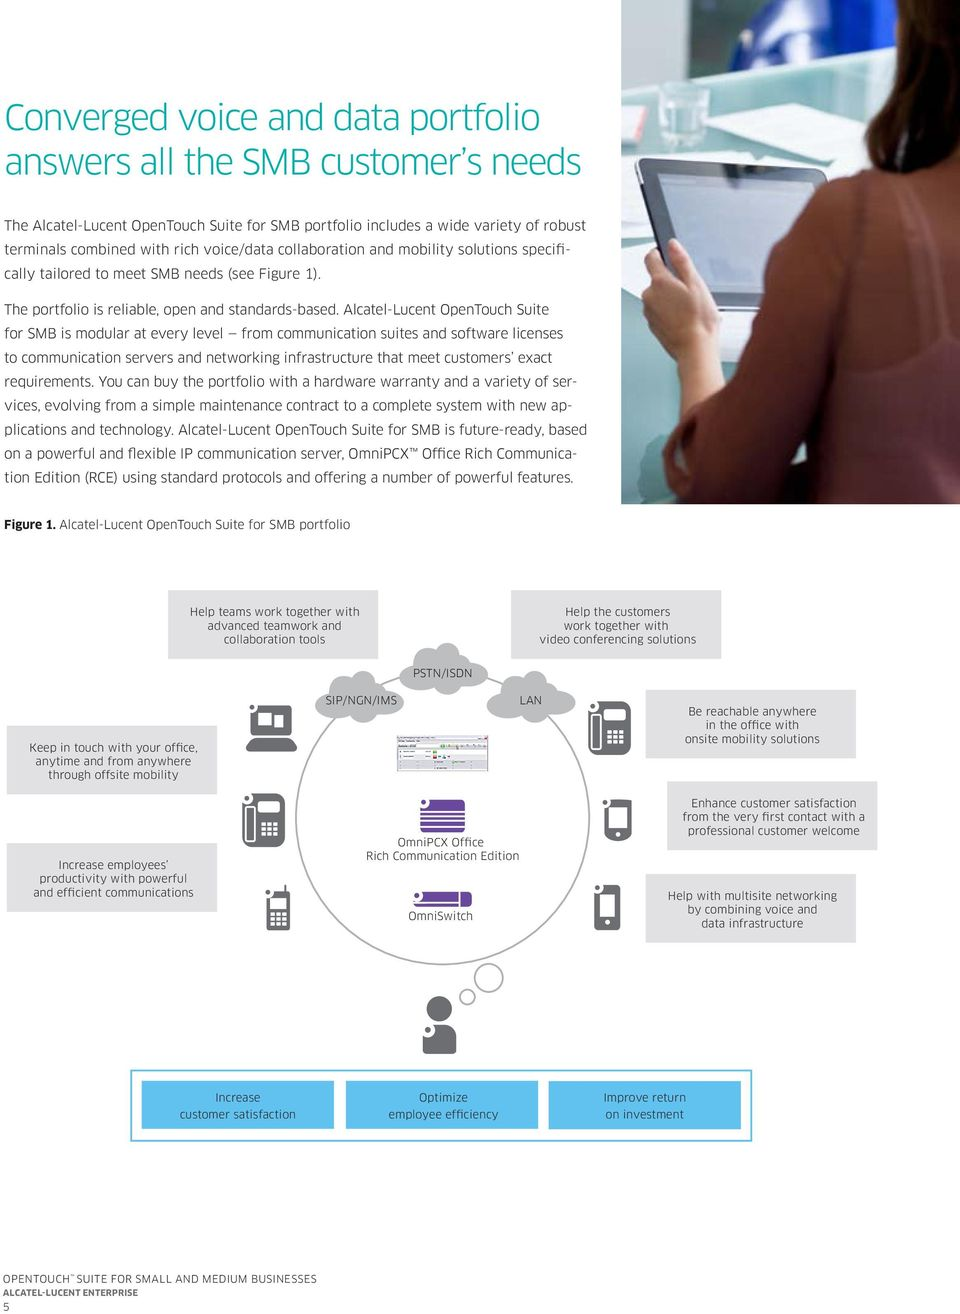 Alcatel-Lucent OpenTouch Suite for SMB is modular at every level from communication suites and software licenses to communication servers and networking infrastructure that meet customers exact